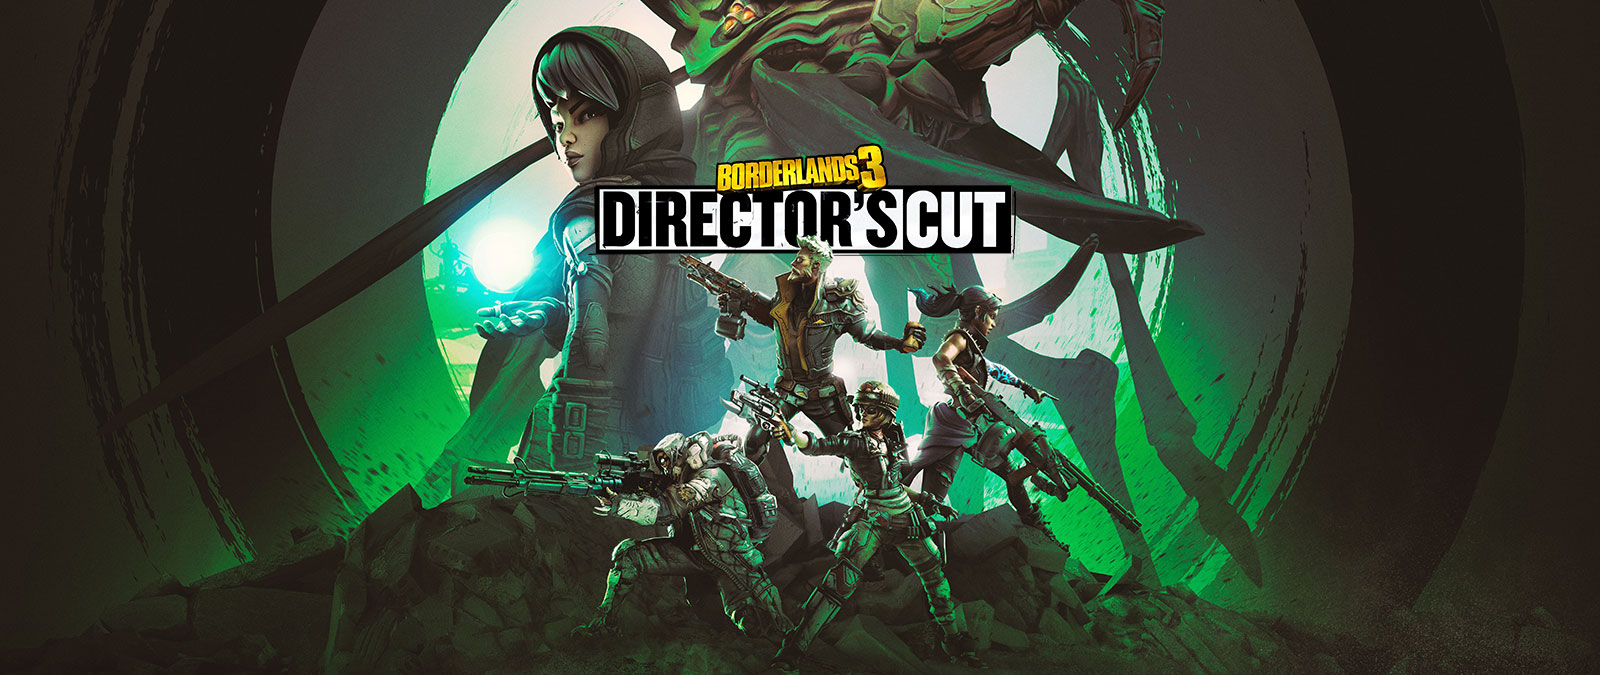 Borderlands 3, Director's Cut. Four characters with weapons on a hill with two larger characters in the background